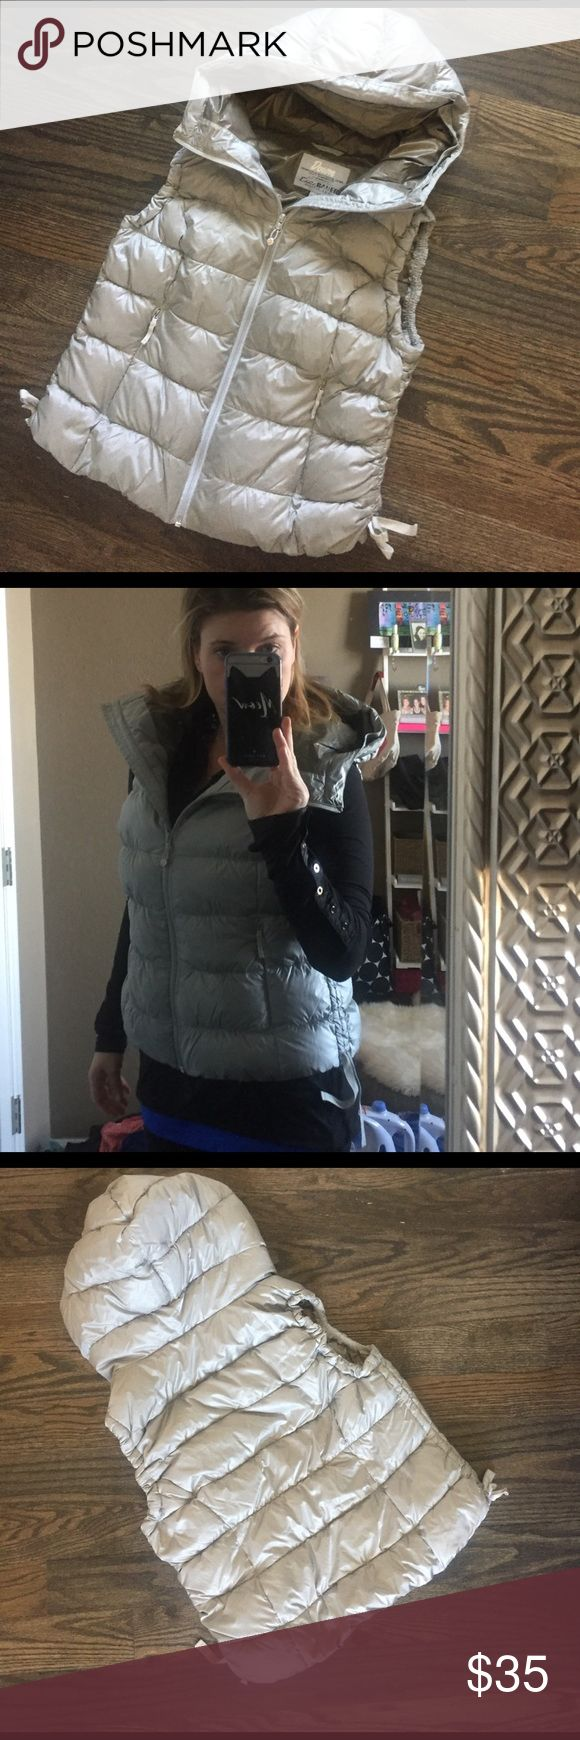 "Eddie Bauer 550fp down Puffer Vest L LP Cute & cozy down puffer hoody vest from Eddie Bauer in petite large but I'm 5'5 1/2 and fit. Sides have adjustable scrunchy ties which add a great effect when layering & also flatter the waist. Gray/silver color. Gently used with no notable issues. 2 front zipper pockets. 20.5"" across underarms & 21"" long. Eddie Bauer Jackets & Coats Vests"